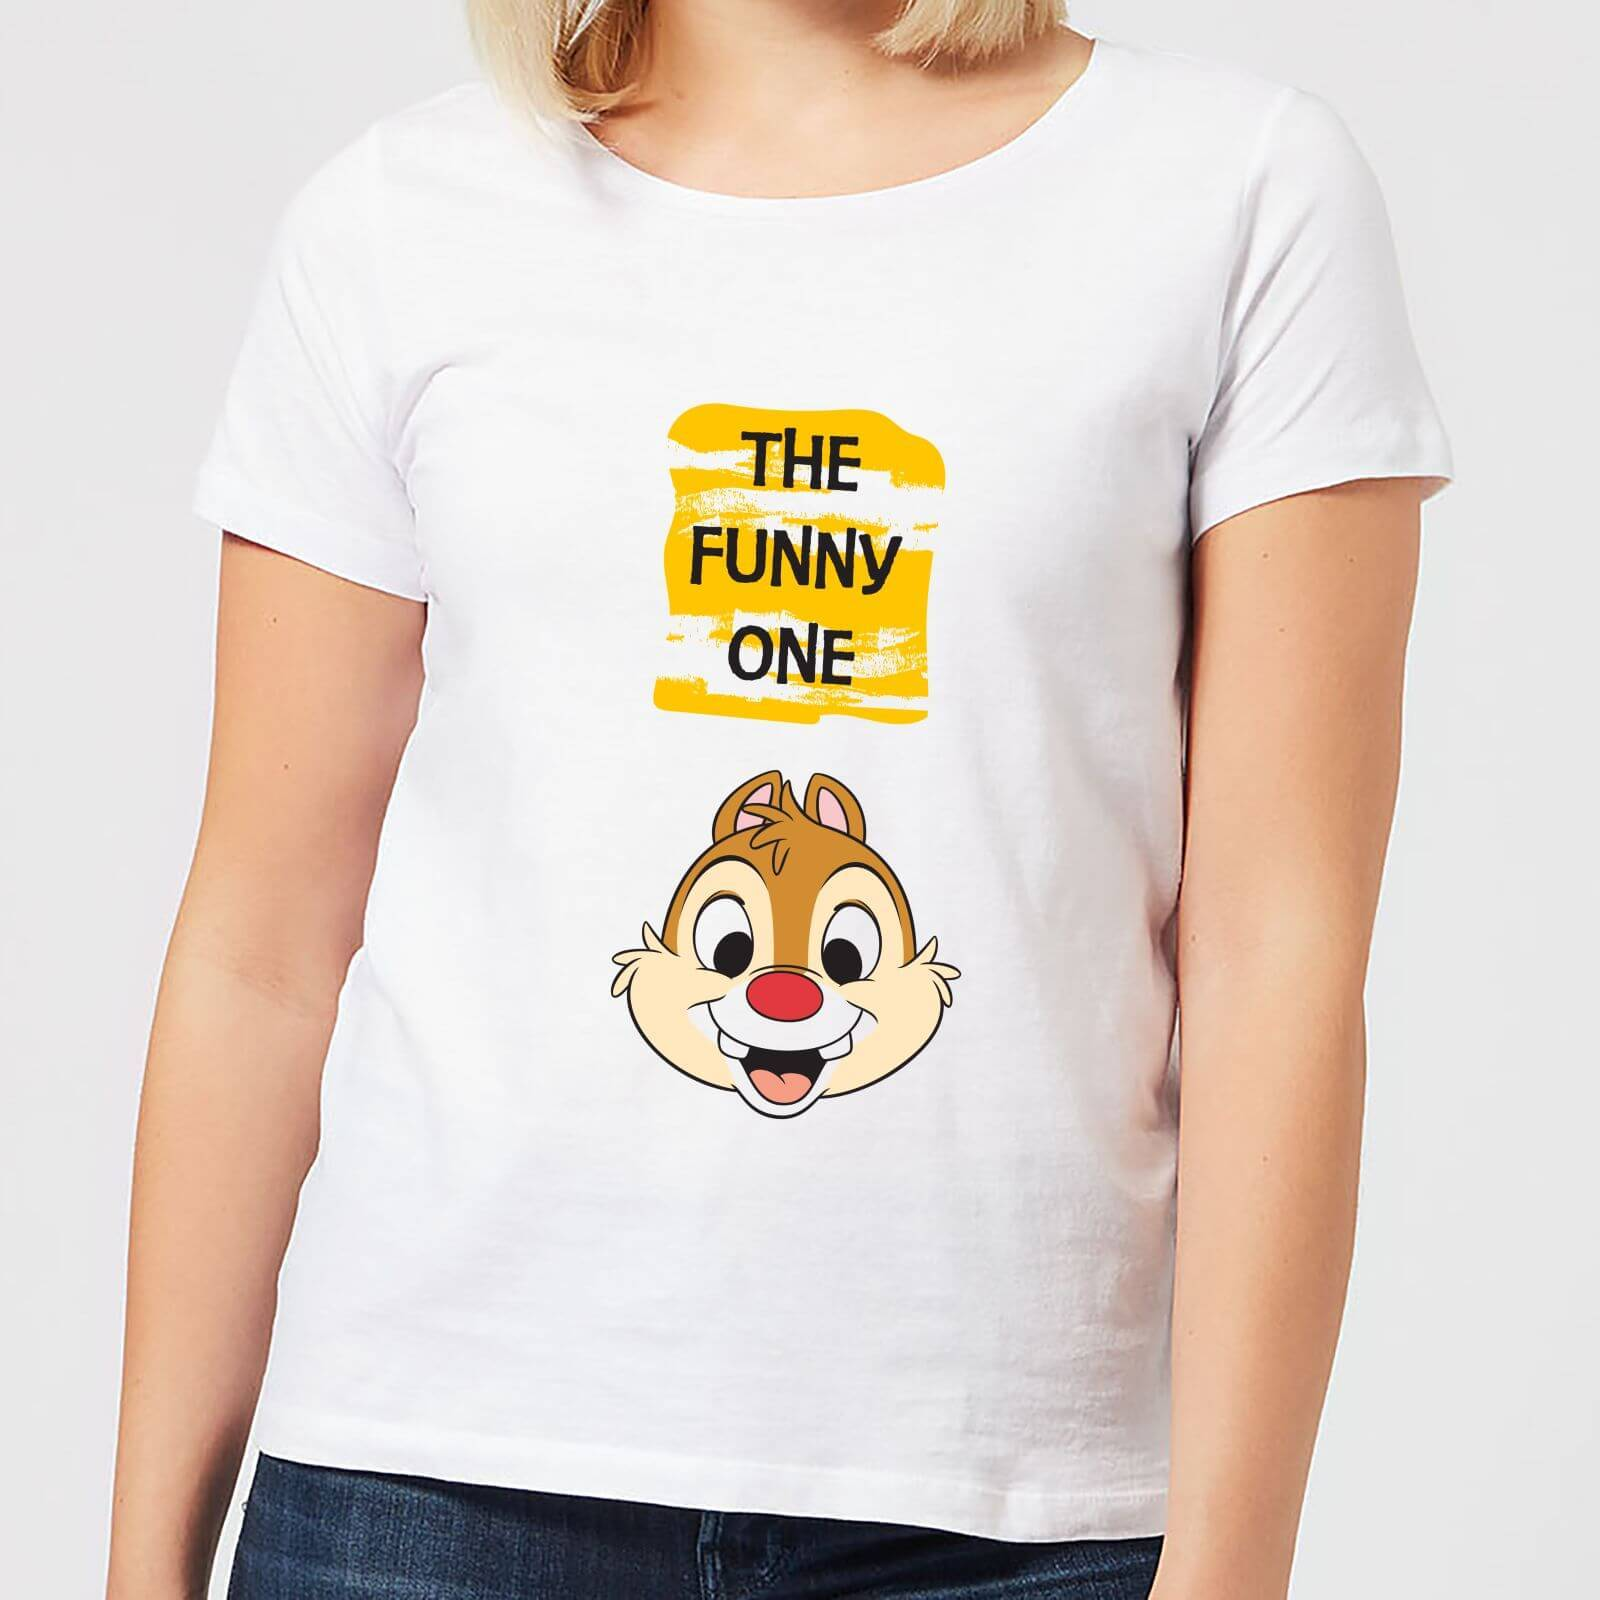 Disney Chip 'N' Dale The Funny One Women's T-Shirt - White - M - White